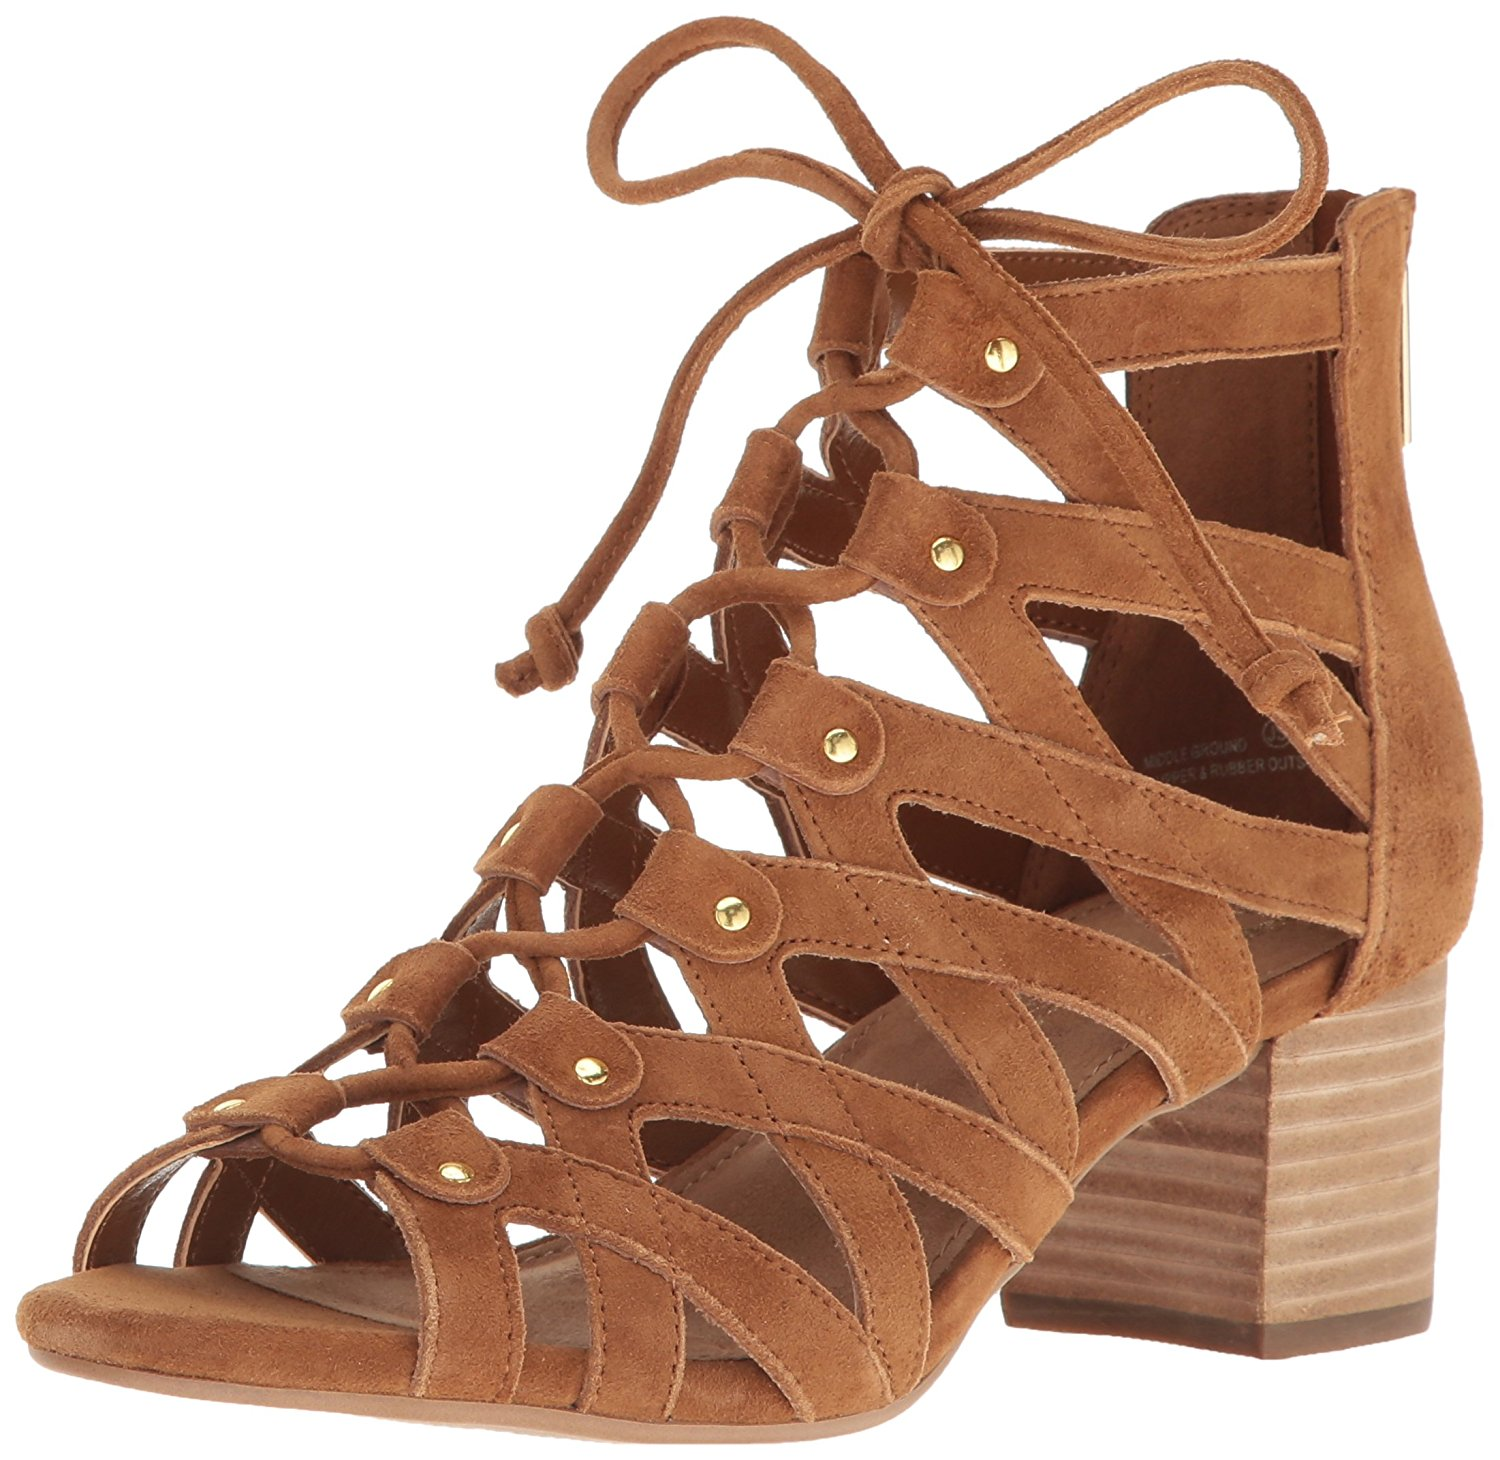 Aerosoles femmes Middle Suede Open Toe Casual Strappy Sandals